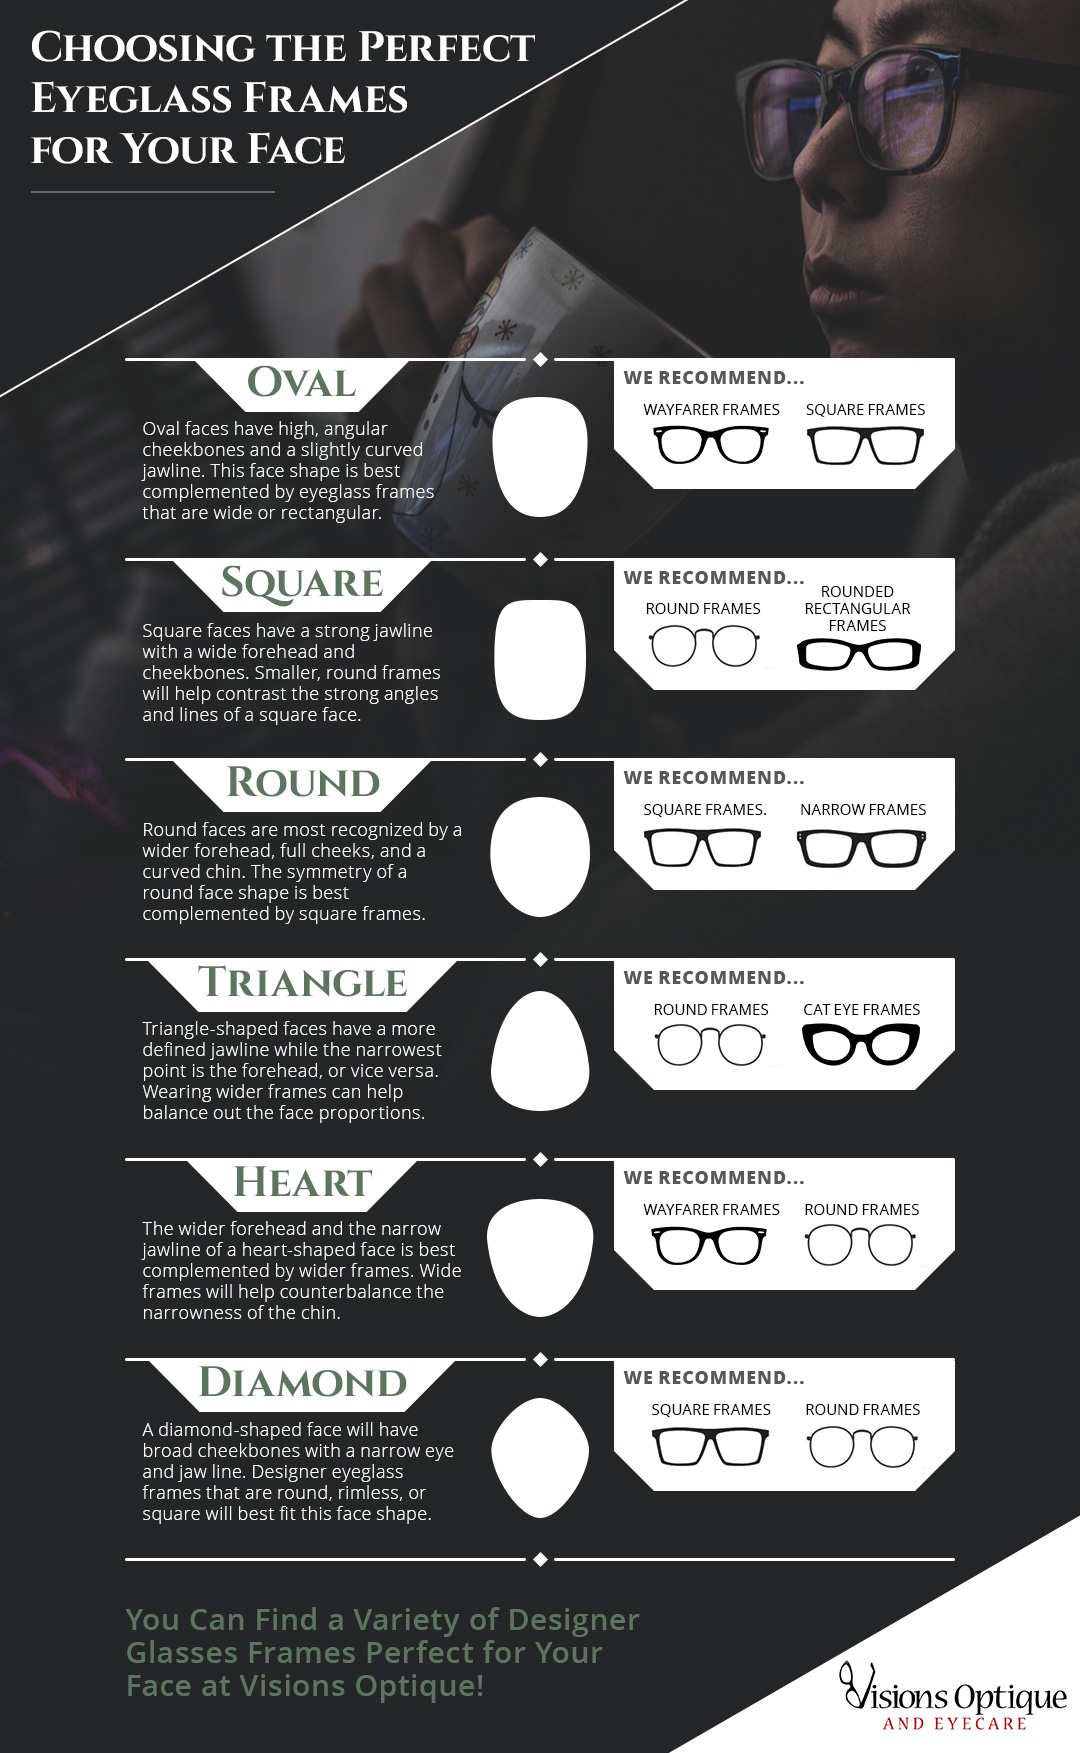 c05b63d24d8 While there are many factors that go into choosing a pair of eyeglasses